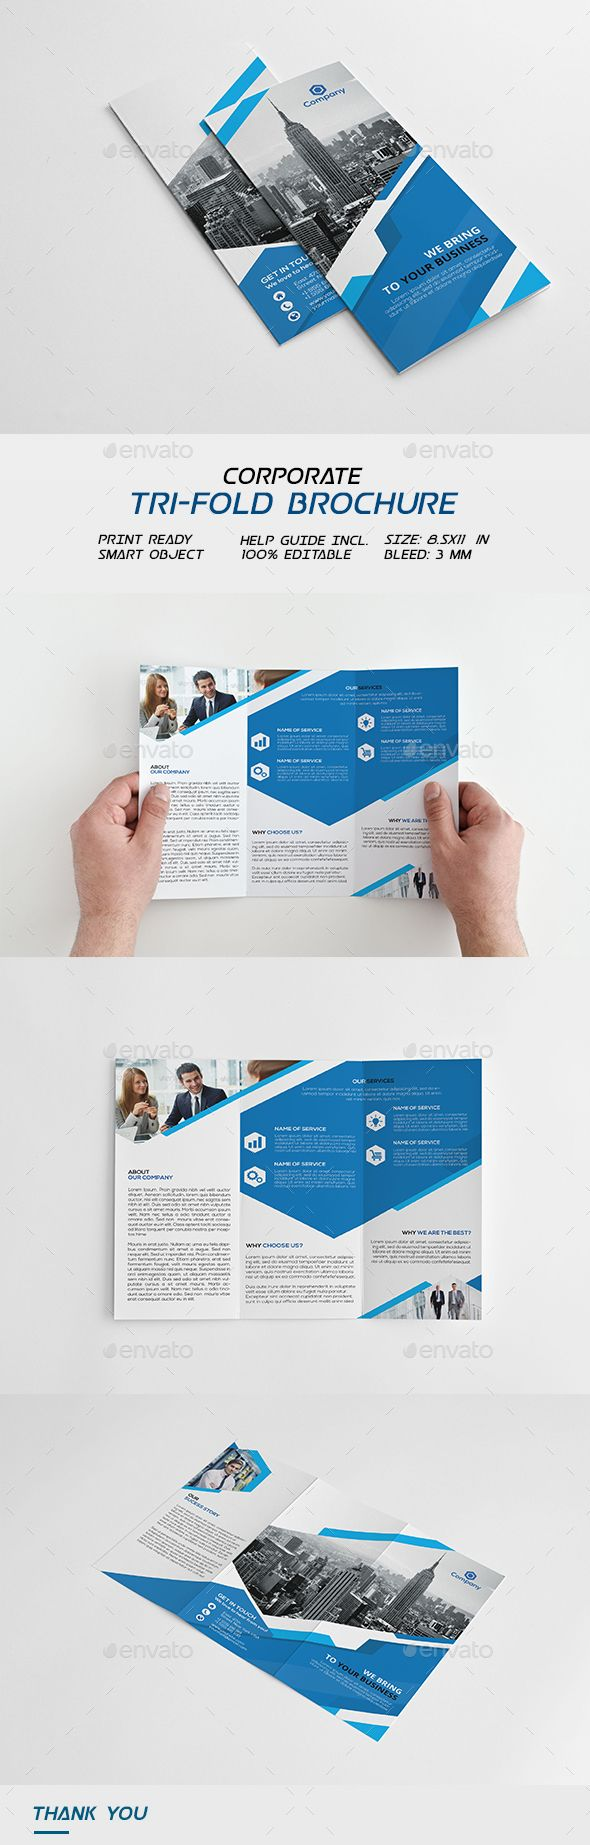 Corporate Trifold Brochure - Corporate #Brochures Download here: https://graphicriver.net/item/corporate-trifold-brochure/18405796?ref=alena994